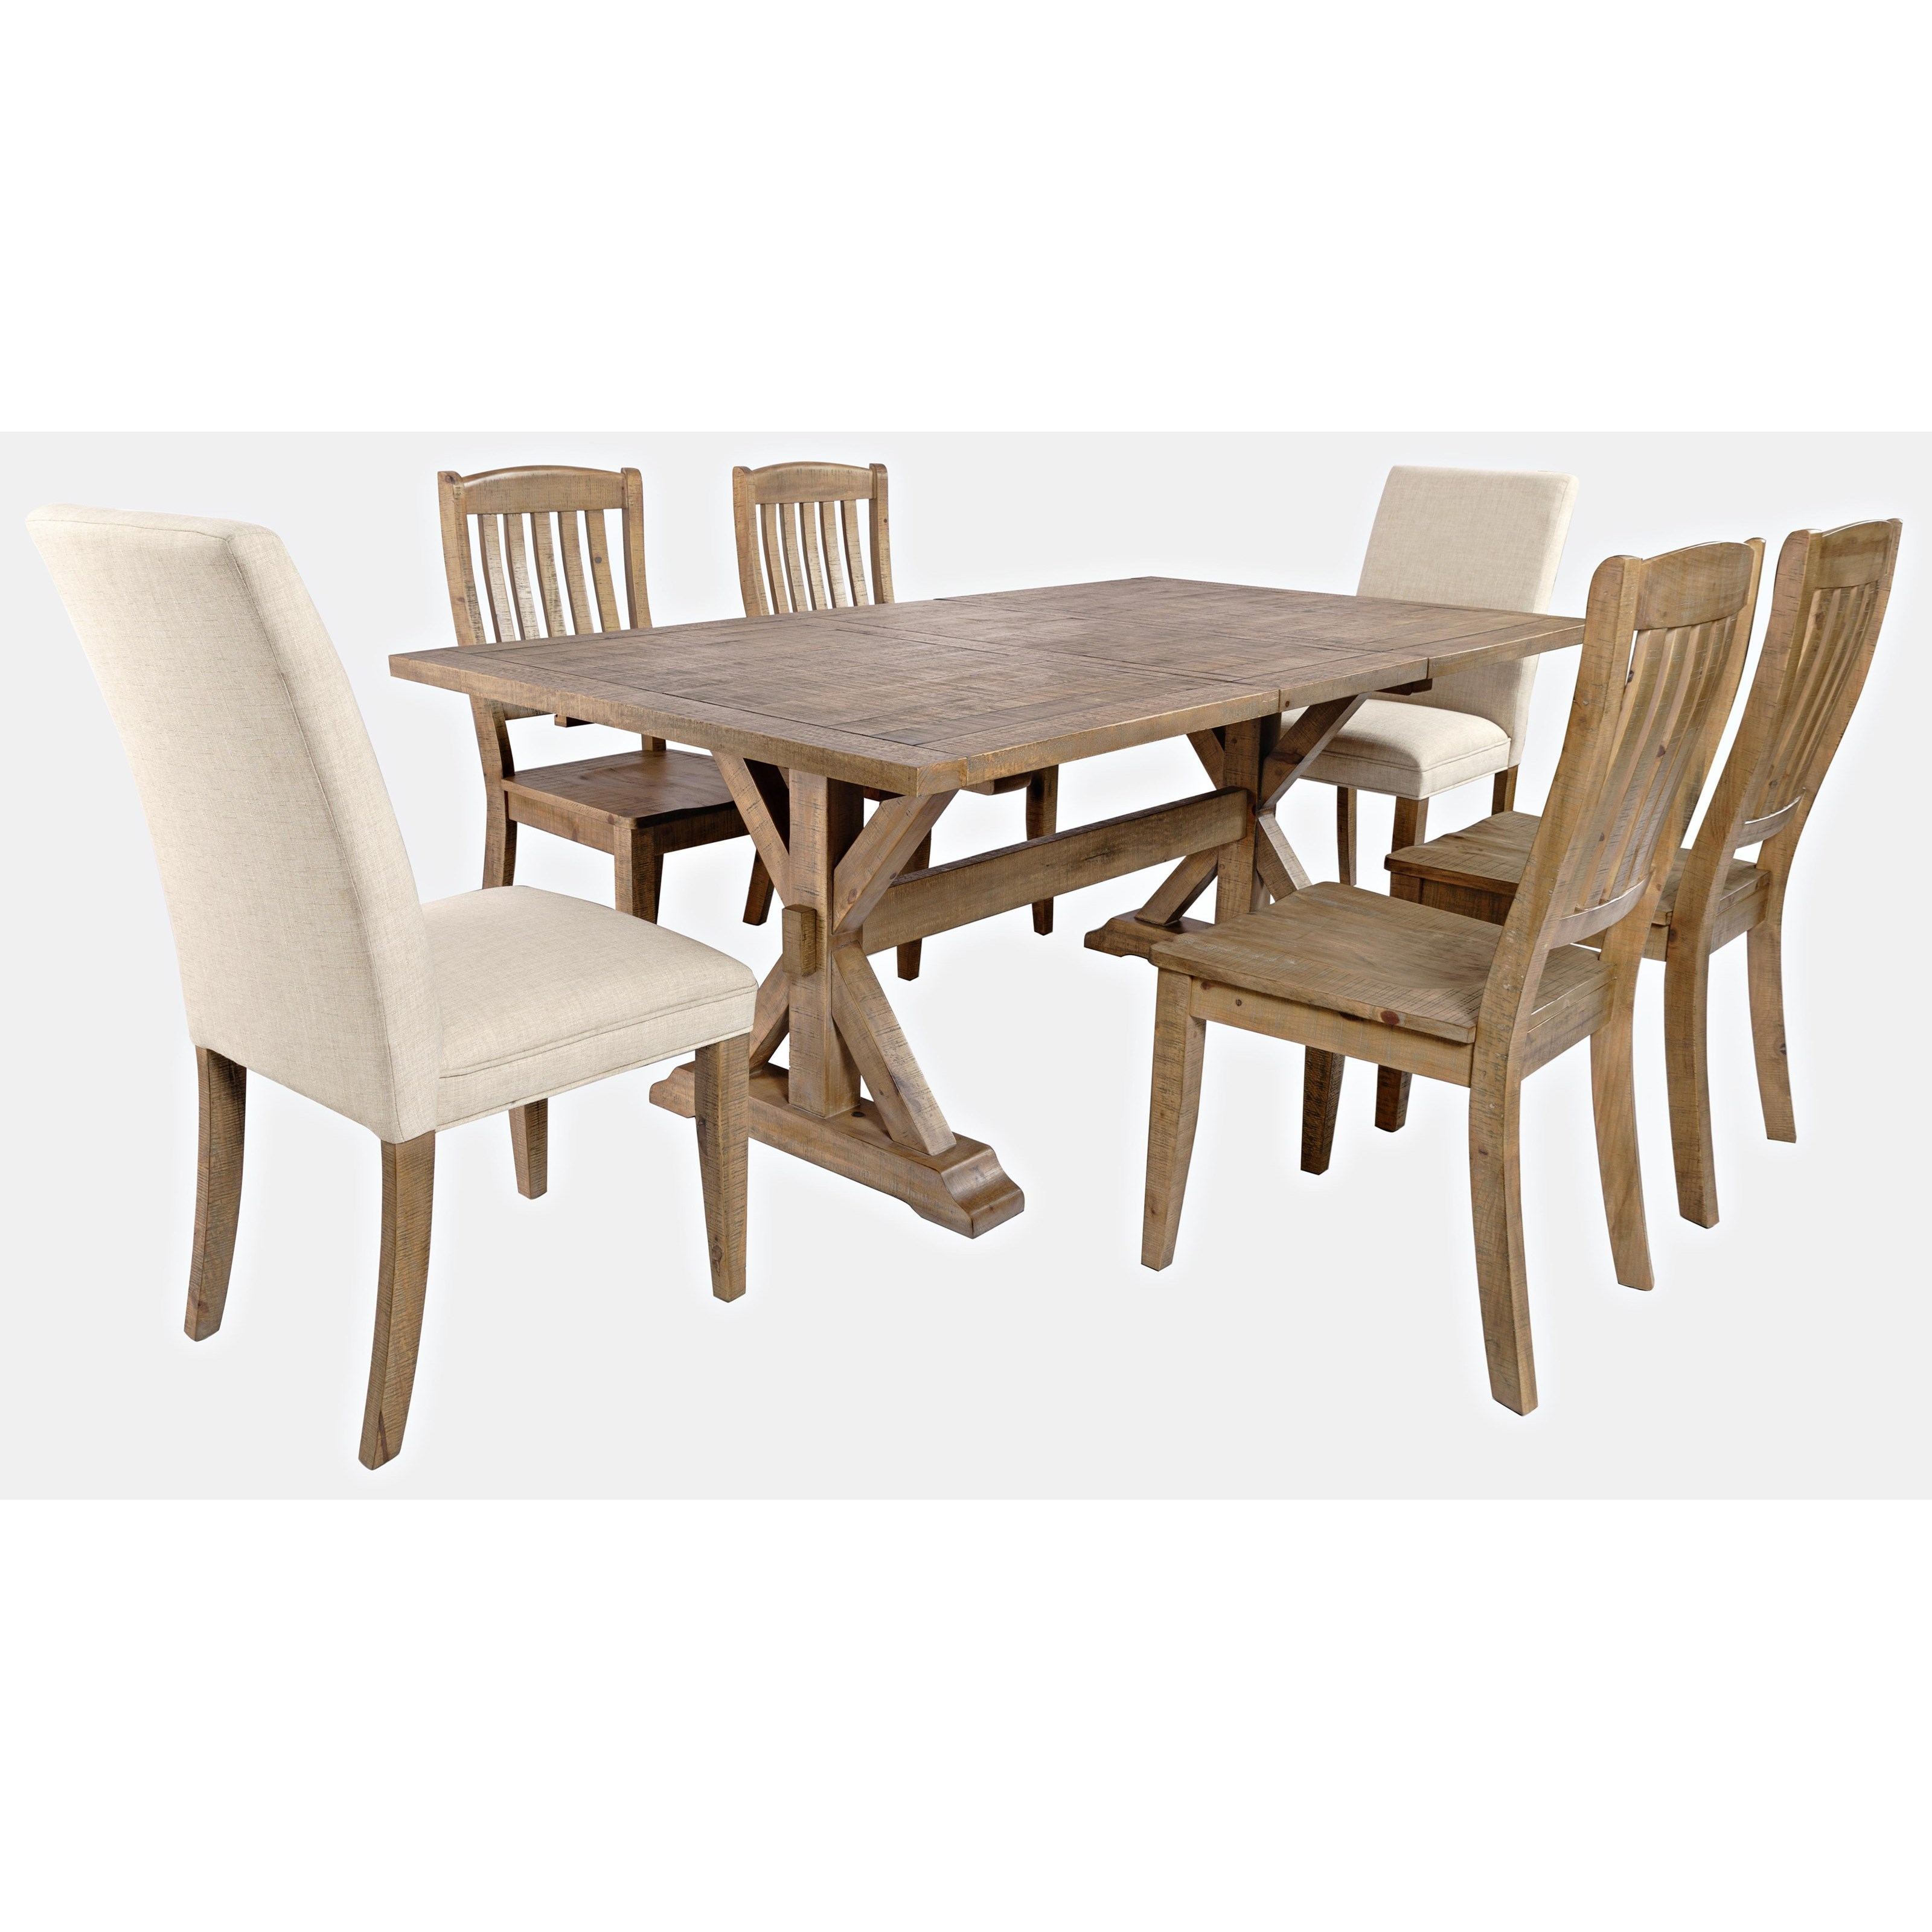 Carlyle Crossing 7-Piece Dining Table and Chair Set by Jofran at Simply Home by Lindy's